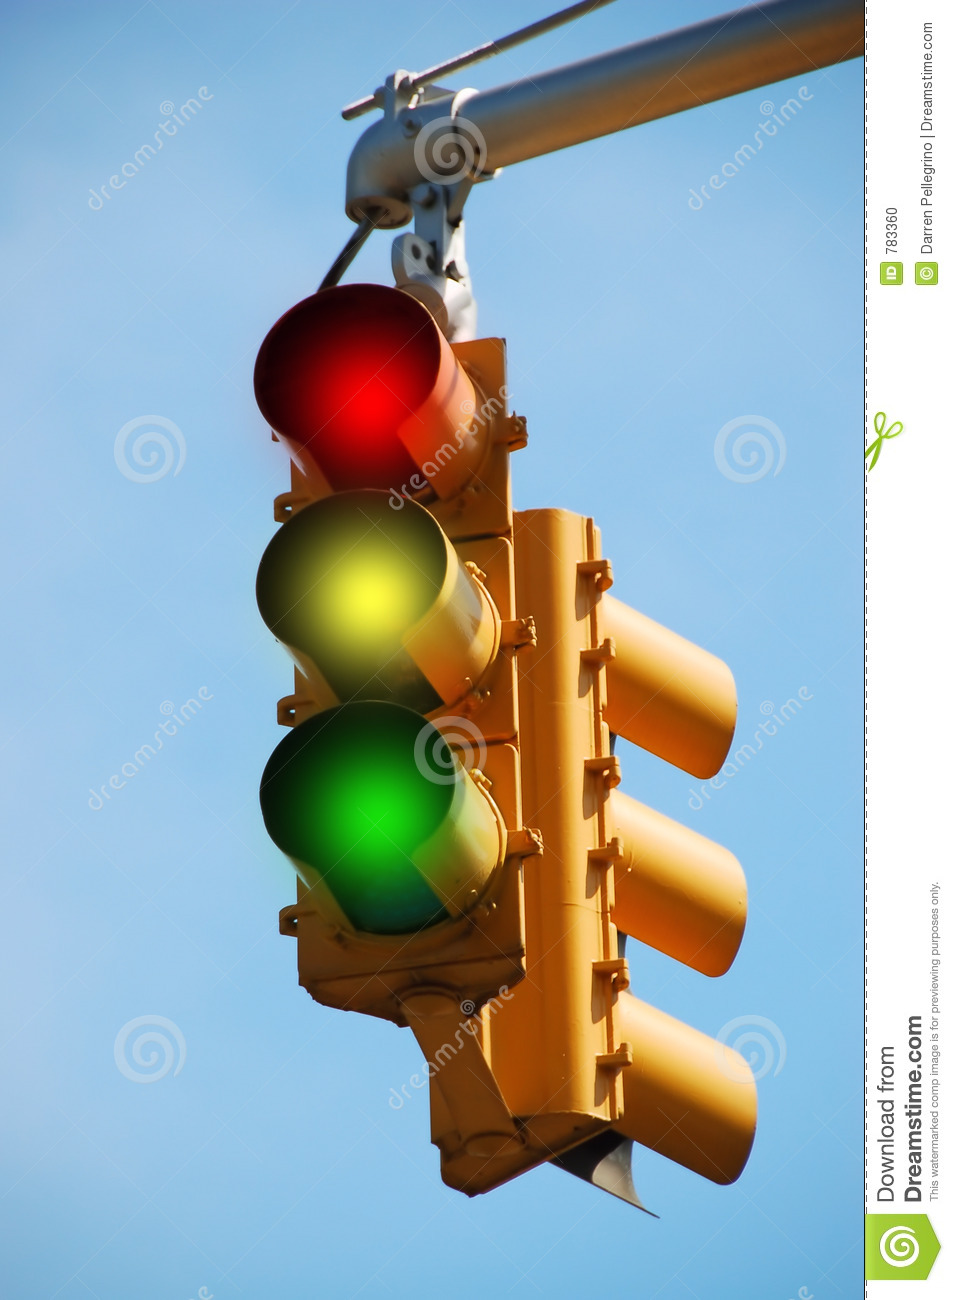 Traffic Light Stock Photo - Image: 783360